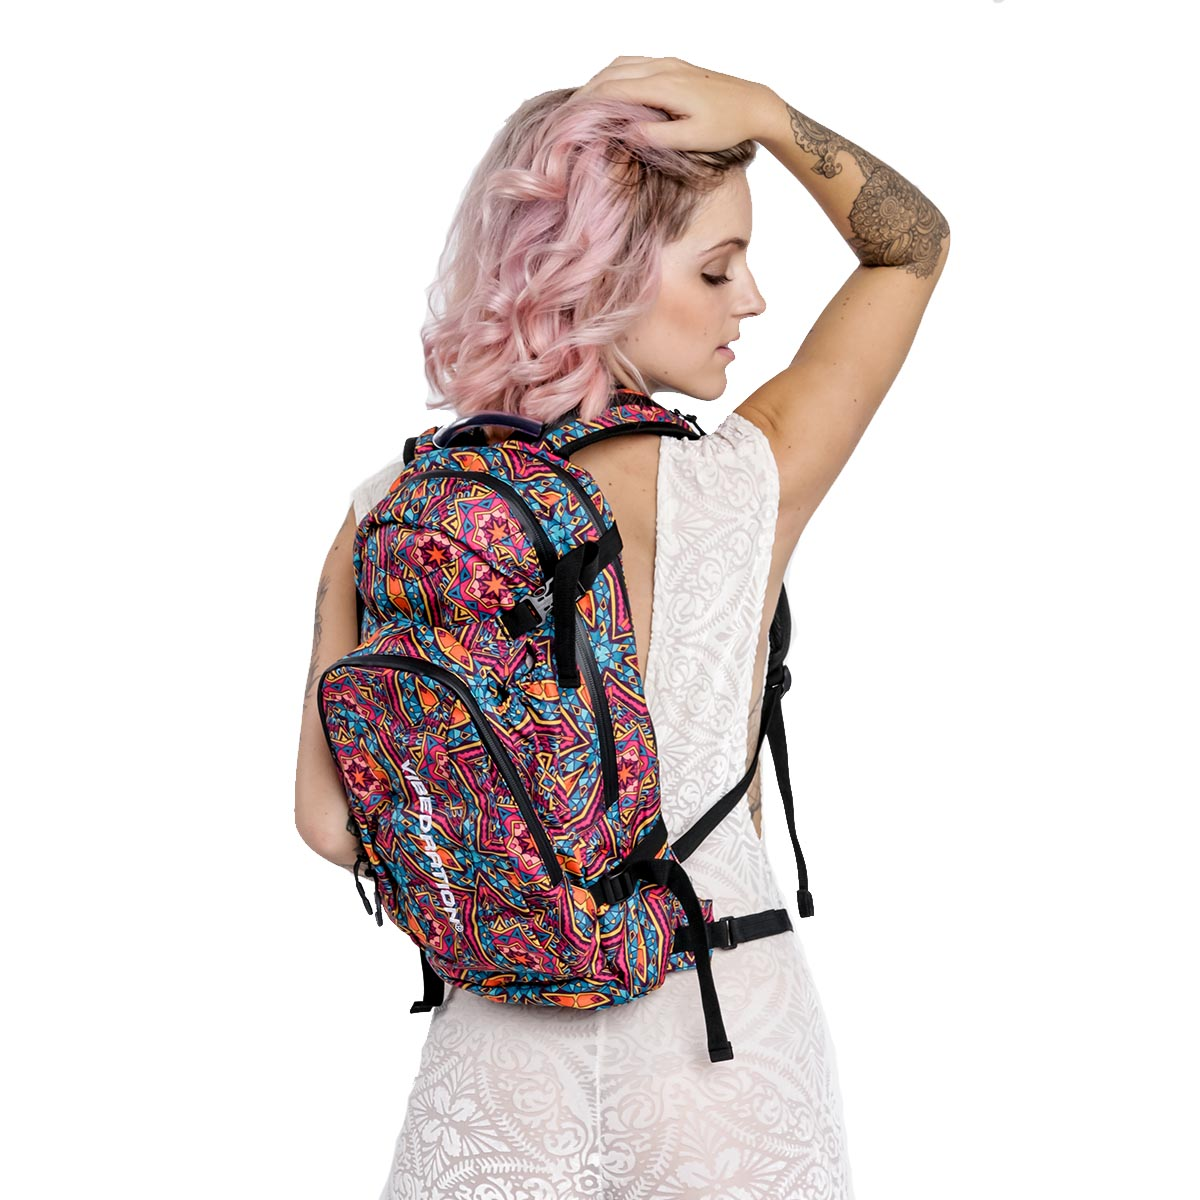 Female wearing cute bohemian hydration backpack with 3L water reservoir and three storage pockets.